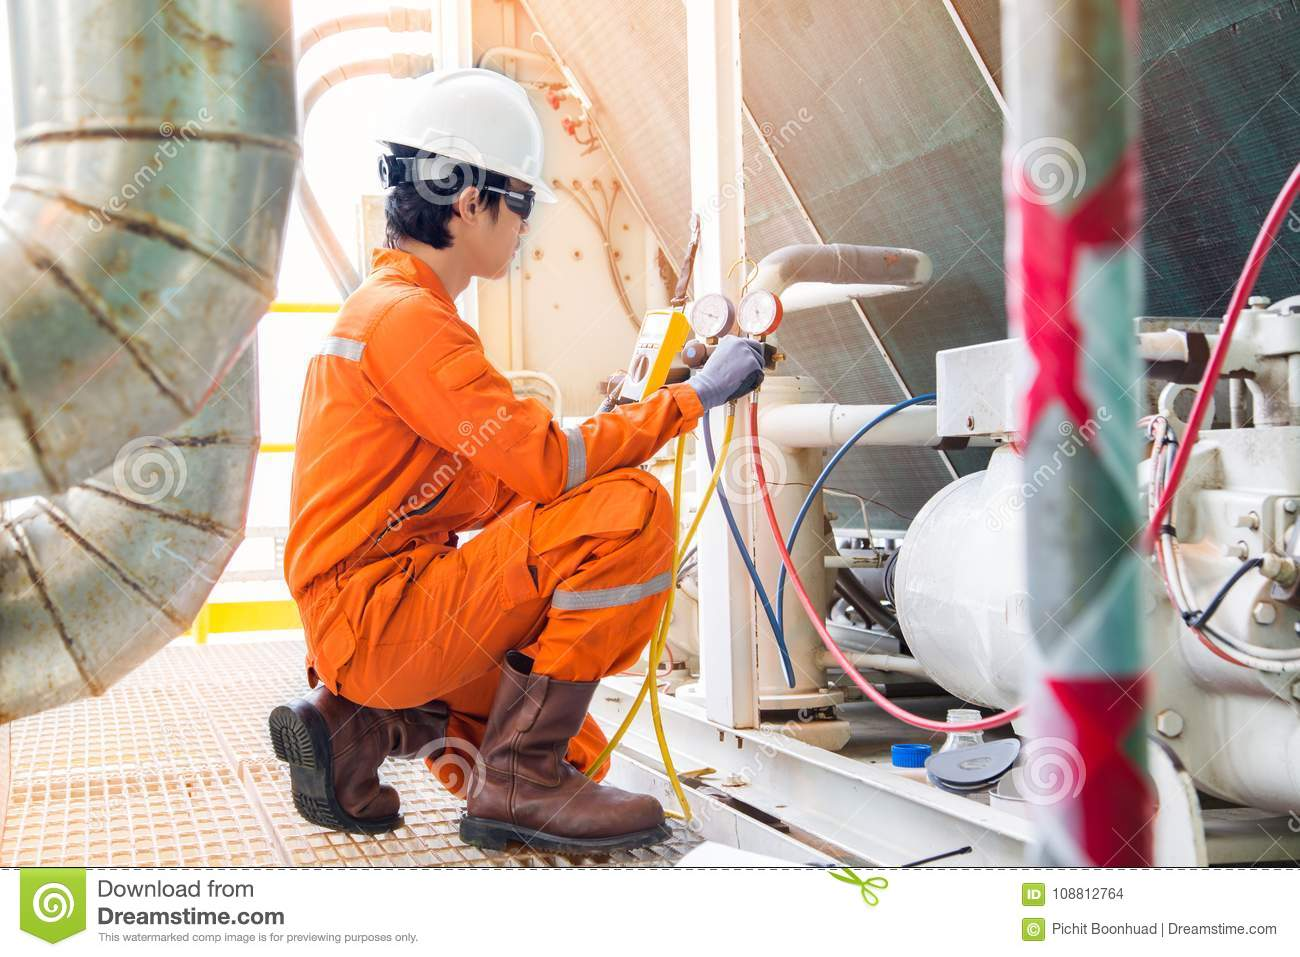 Download Electrical Specialist Checking Heating Ventilation And Air Conditioning System HVAC For Preventive Maintenance. Stock Photo - Image of equipment, electrical: 108812764